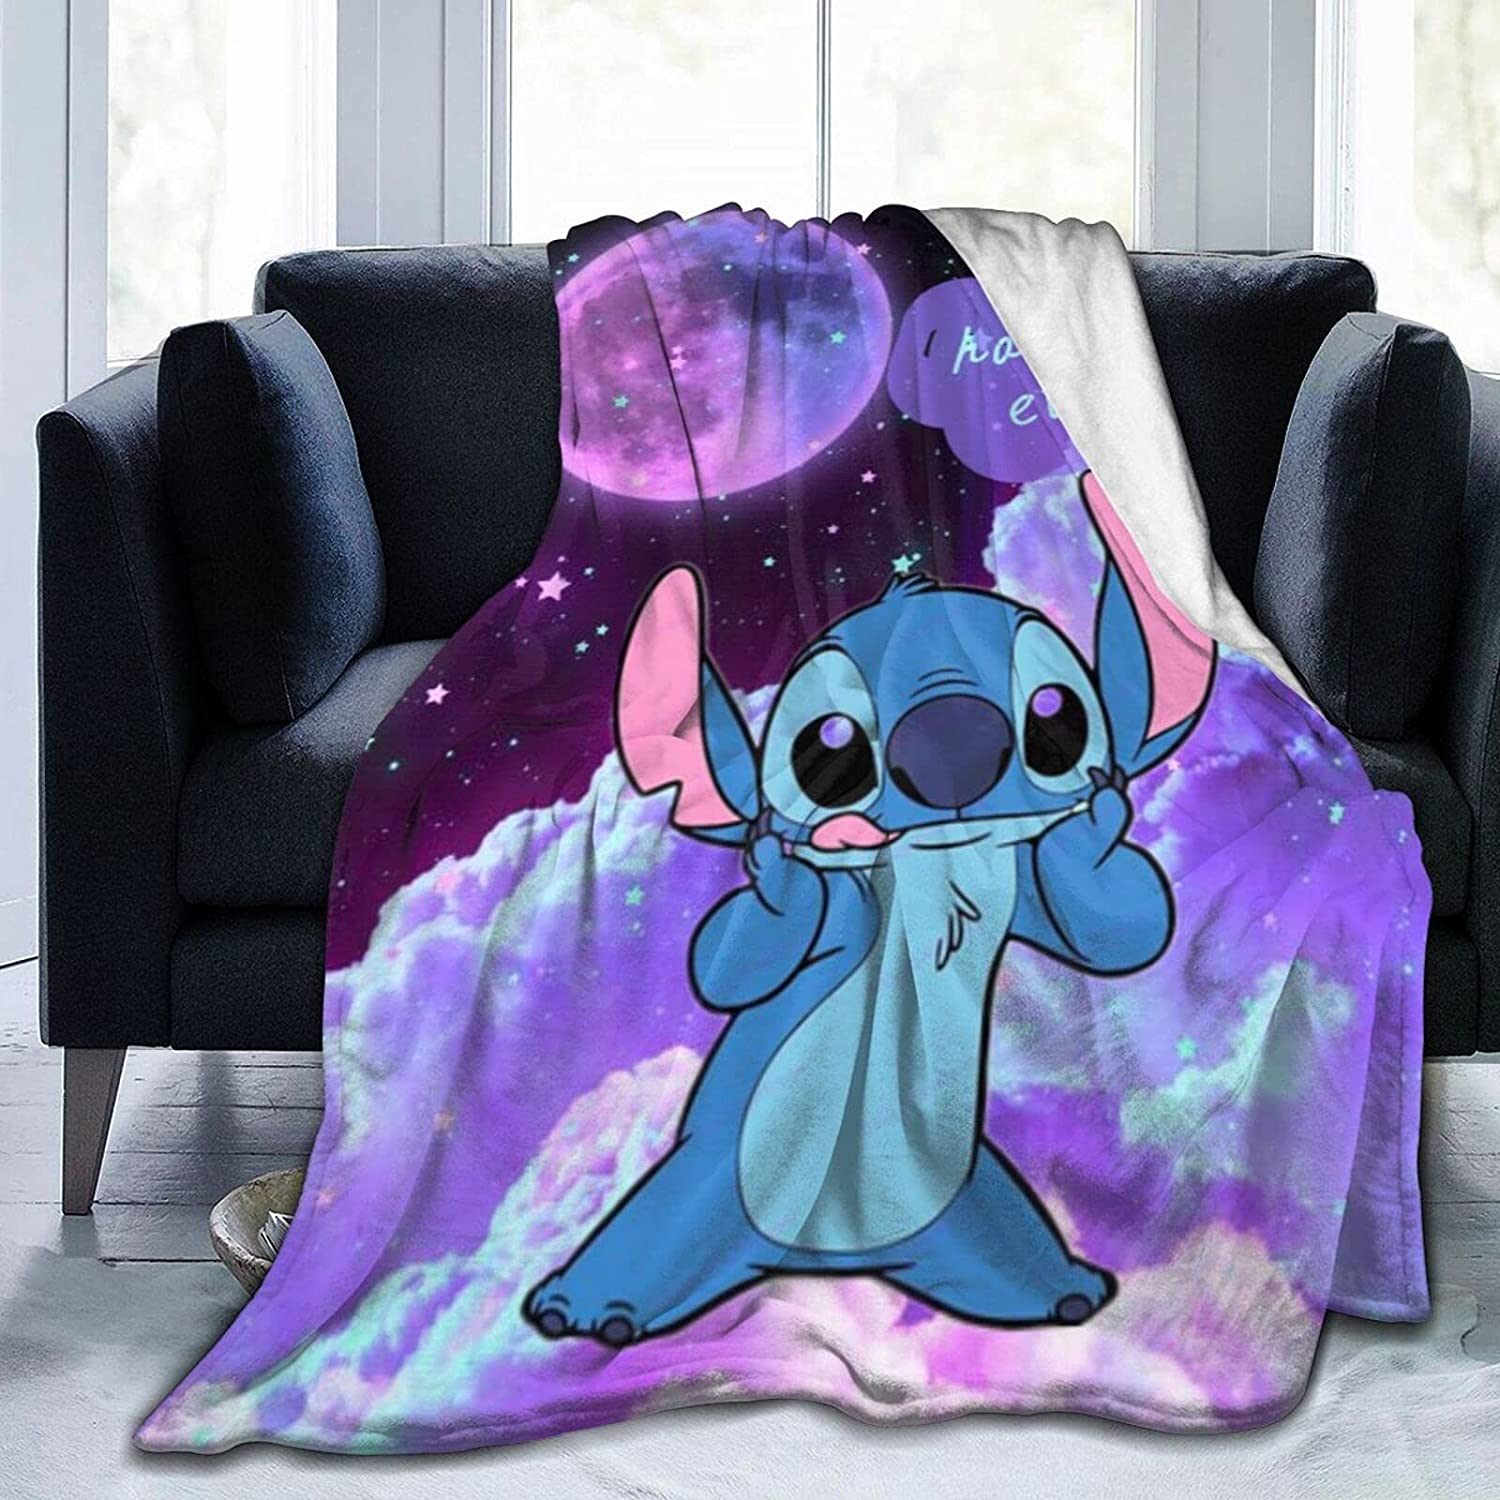 New arrival Yesbddfbc Stitch-with-Lilo Throw Ranking TOP14 Blanket Bed Flannel Fleece Blan